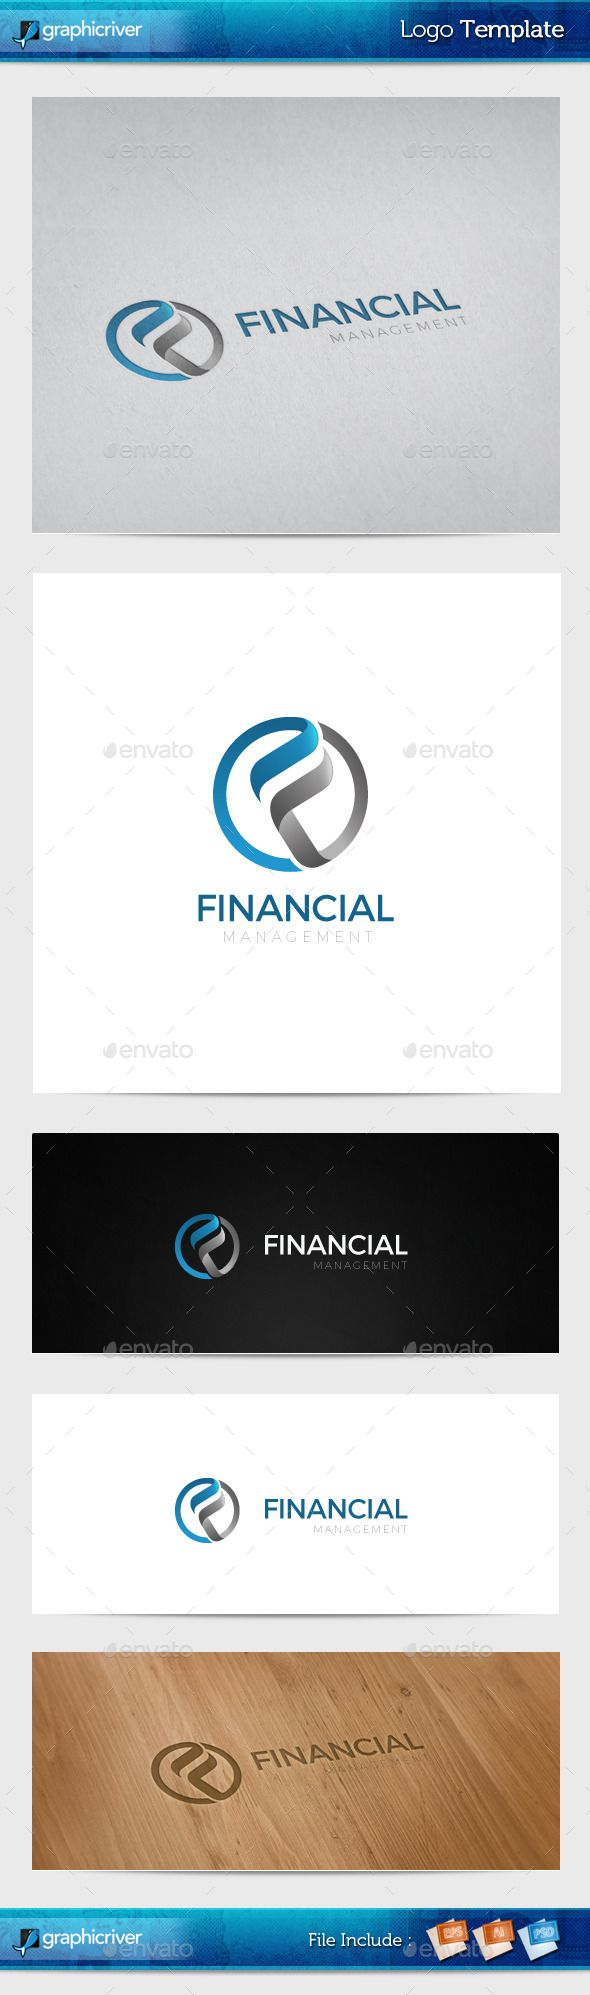 Financial Management Logo Template — Photoshop PSD #business #global • Available here → https://graphicriver.net/item/financial-management-logo-template/10938945?ref=pxcr